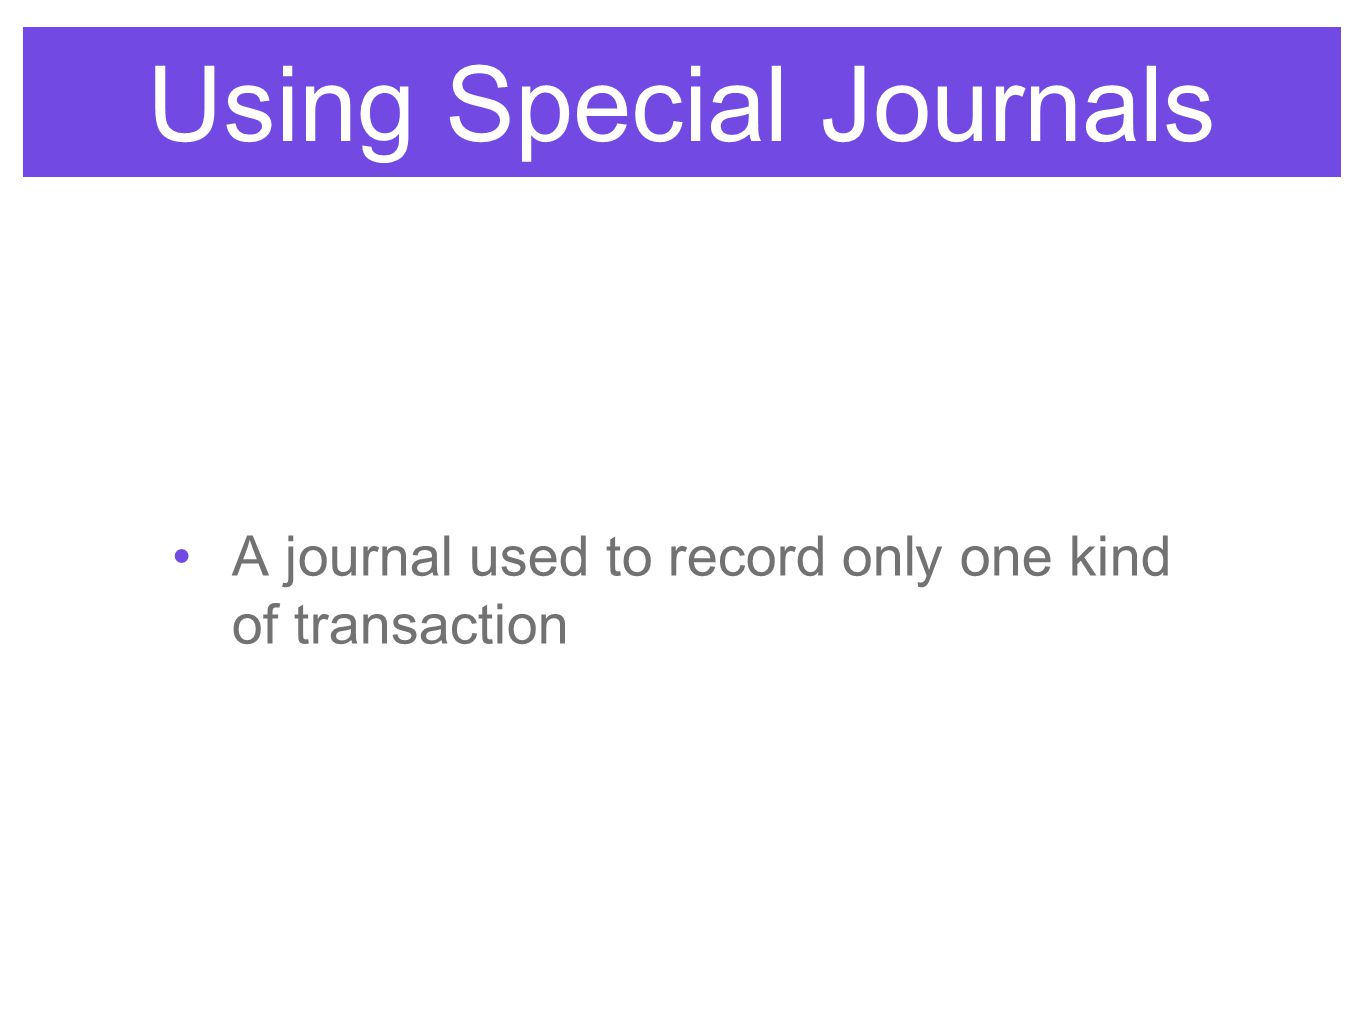 Using Special Journals A journal used to record only one kind of transaction